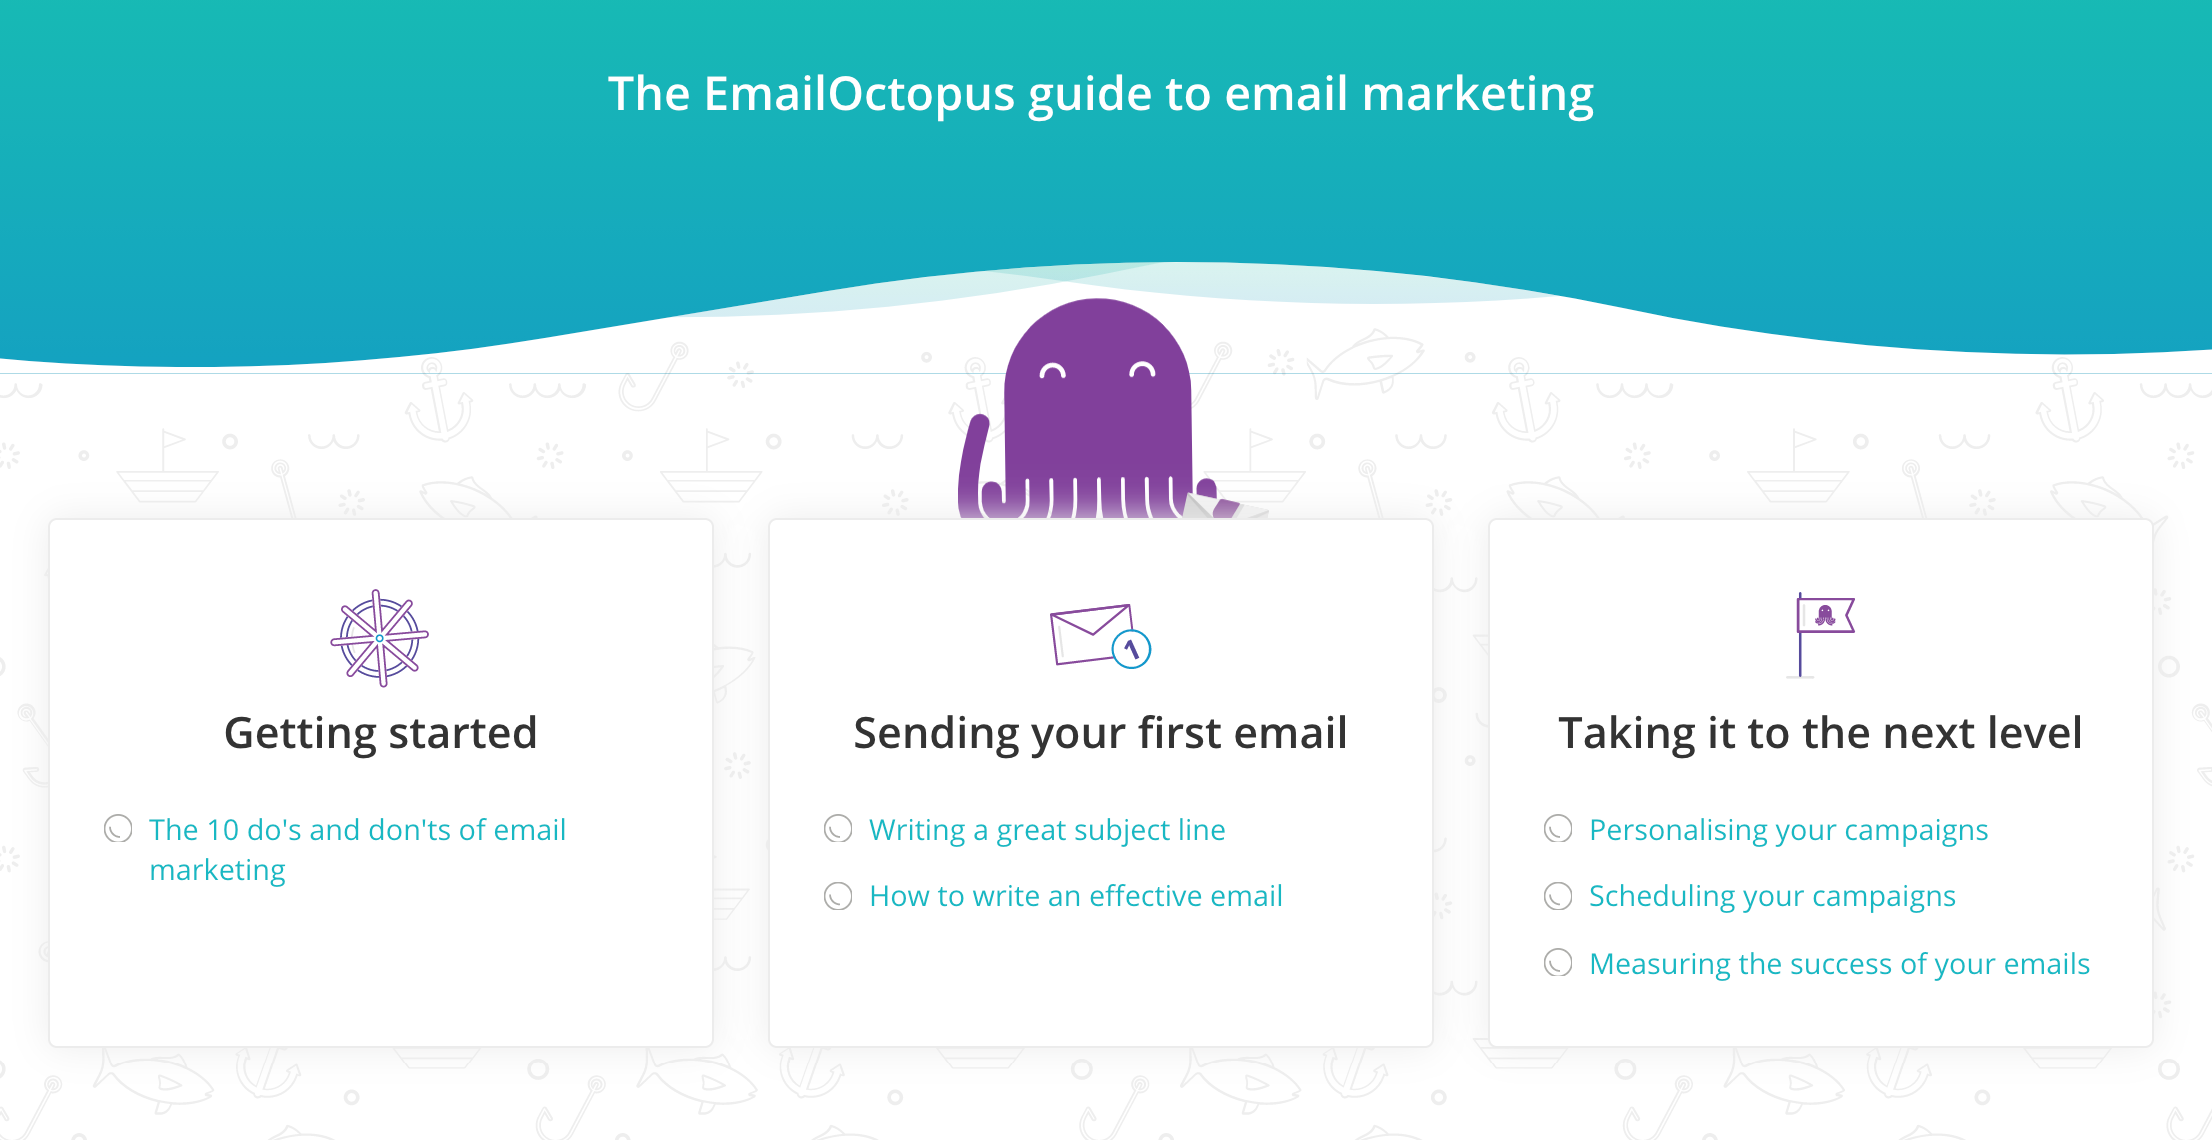 emailoctopus email marketing guide